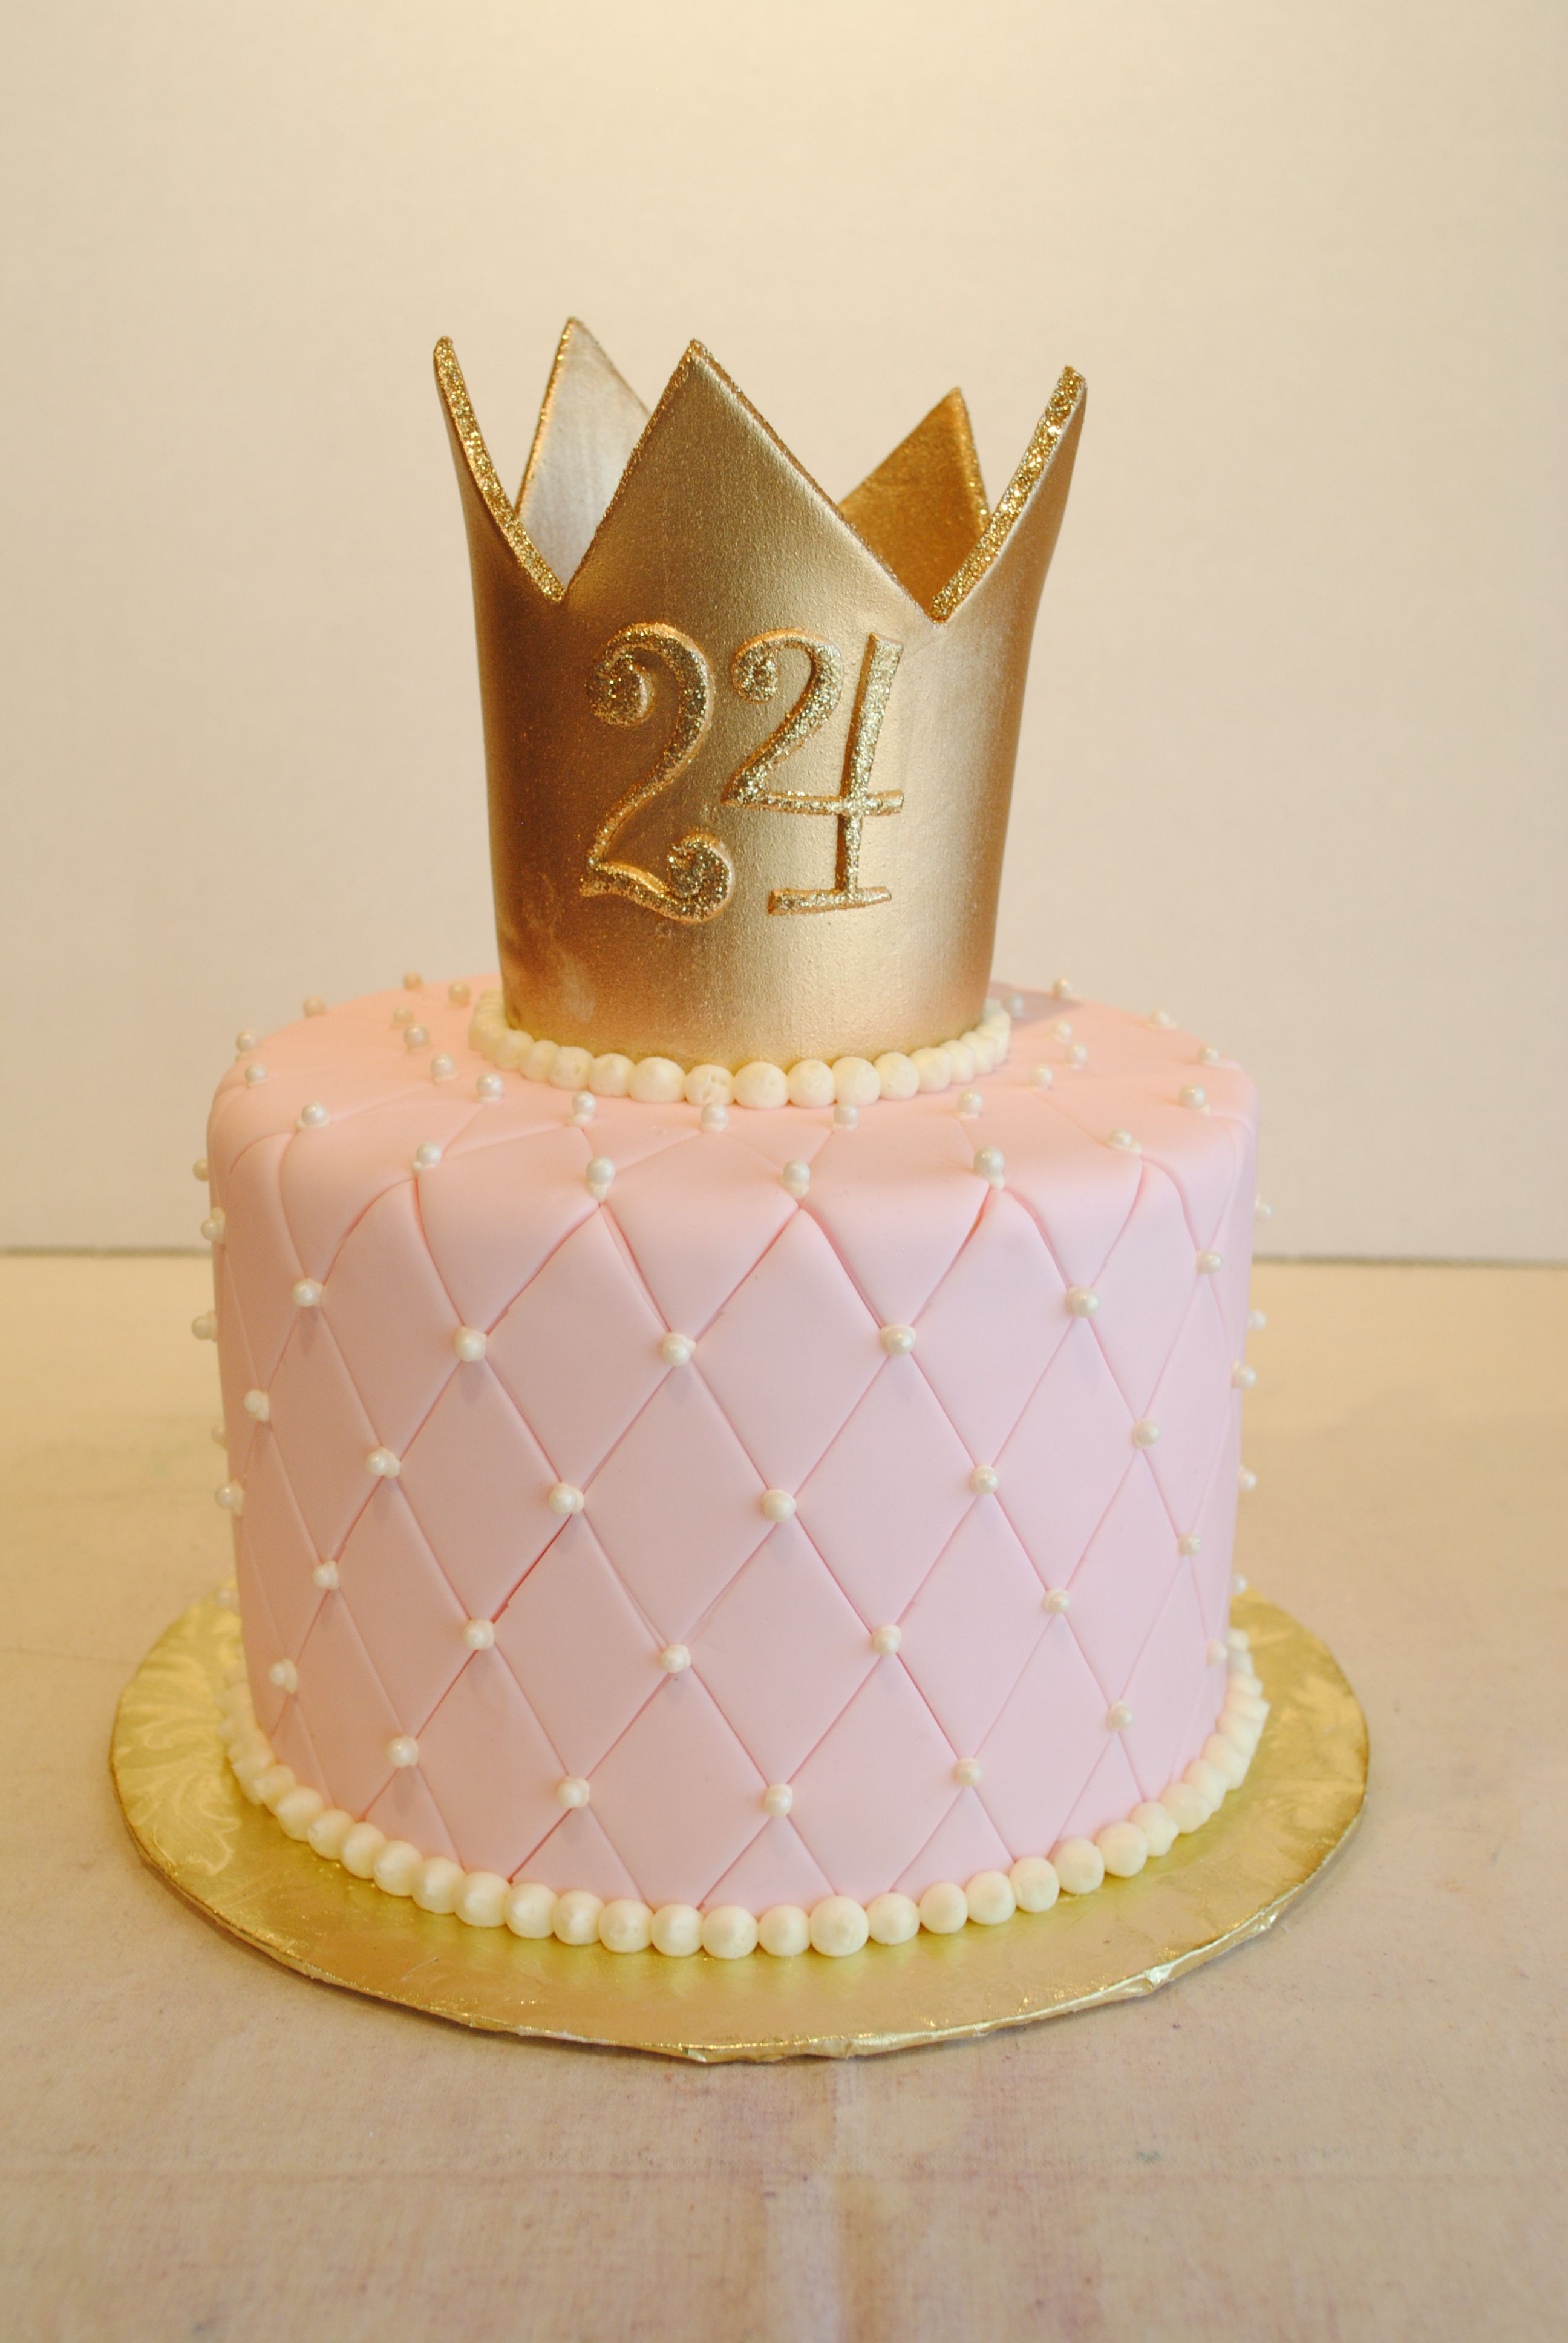 Best ideas about Crown Birthday Cake . Save or Pin Princess cake Fondant quilted pin cushion with gold crown Now.